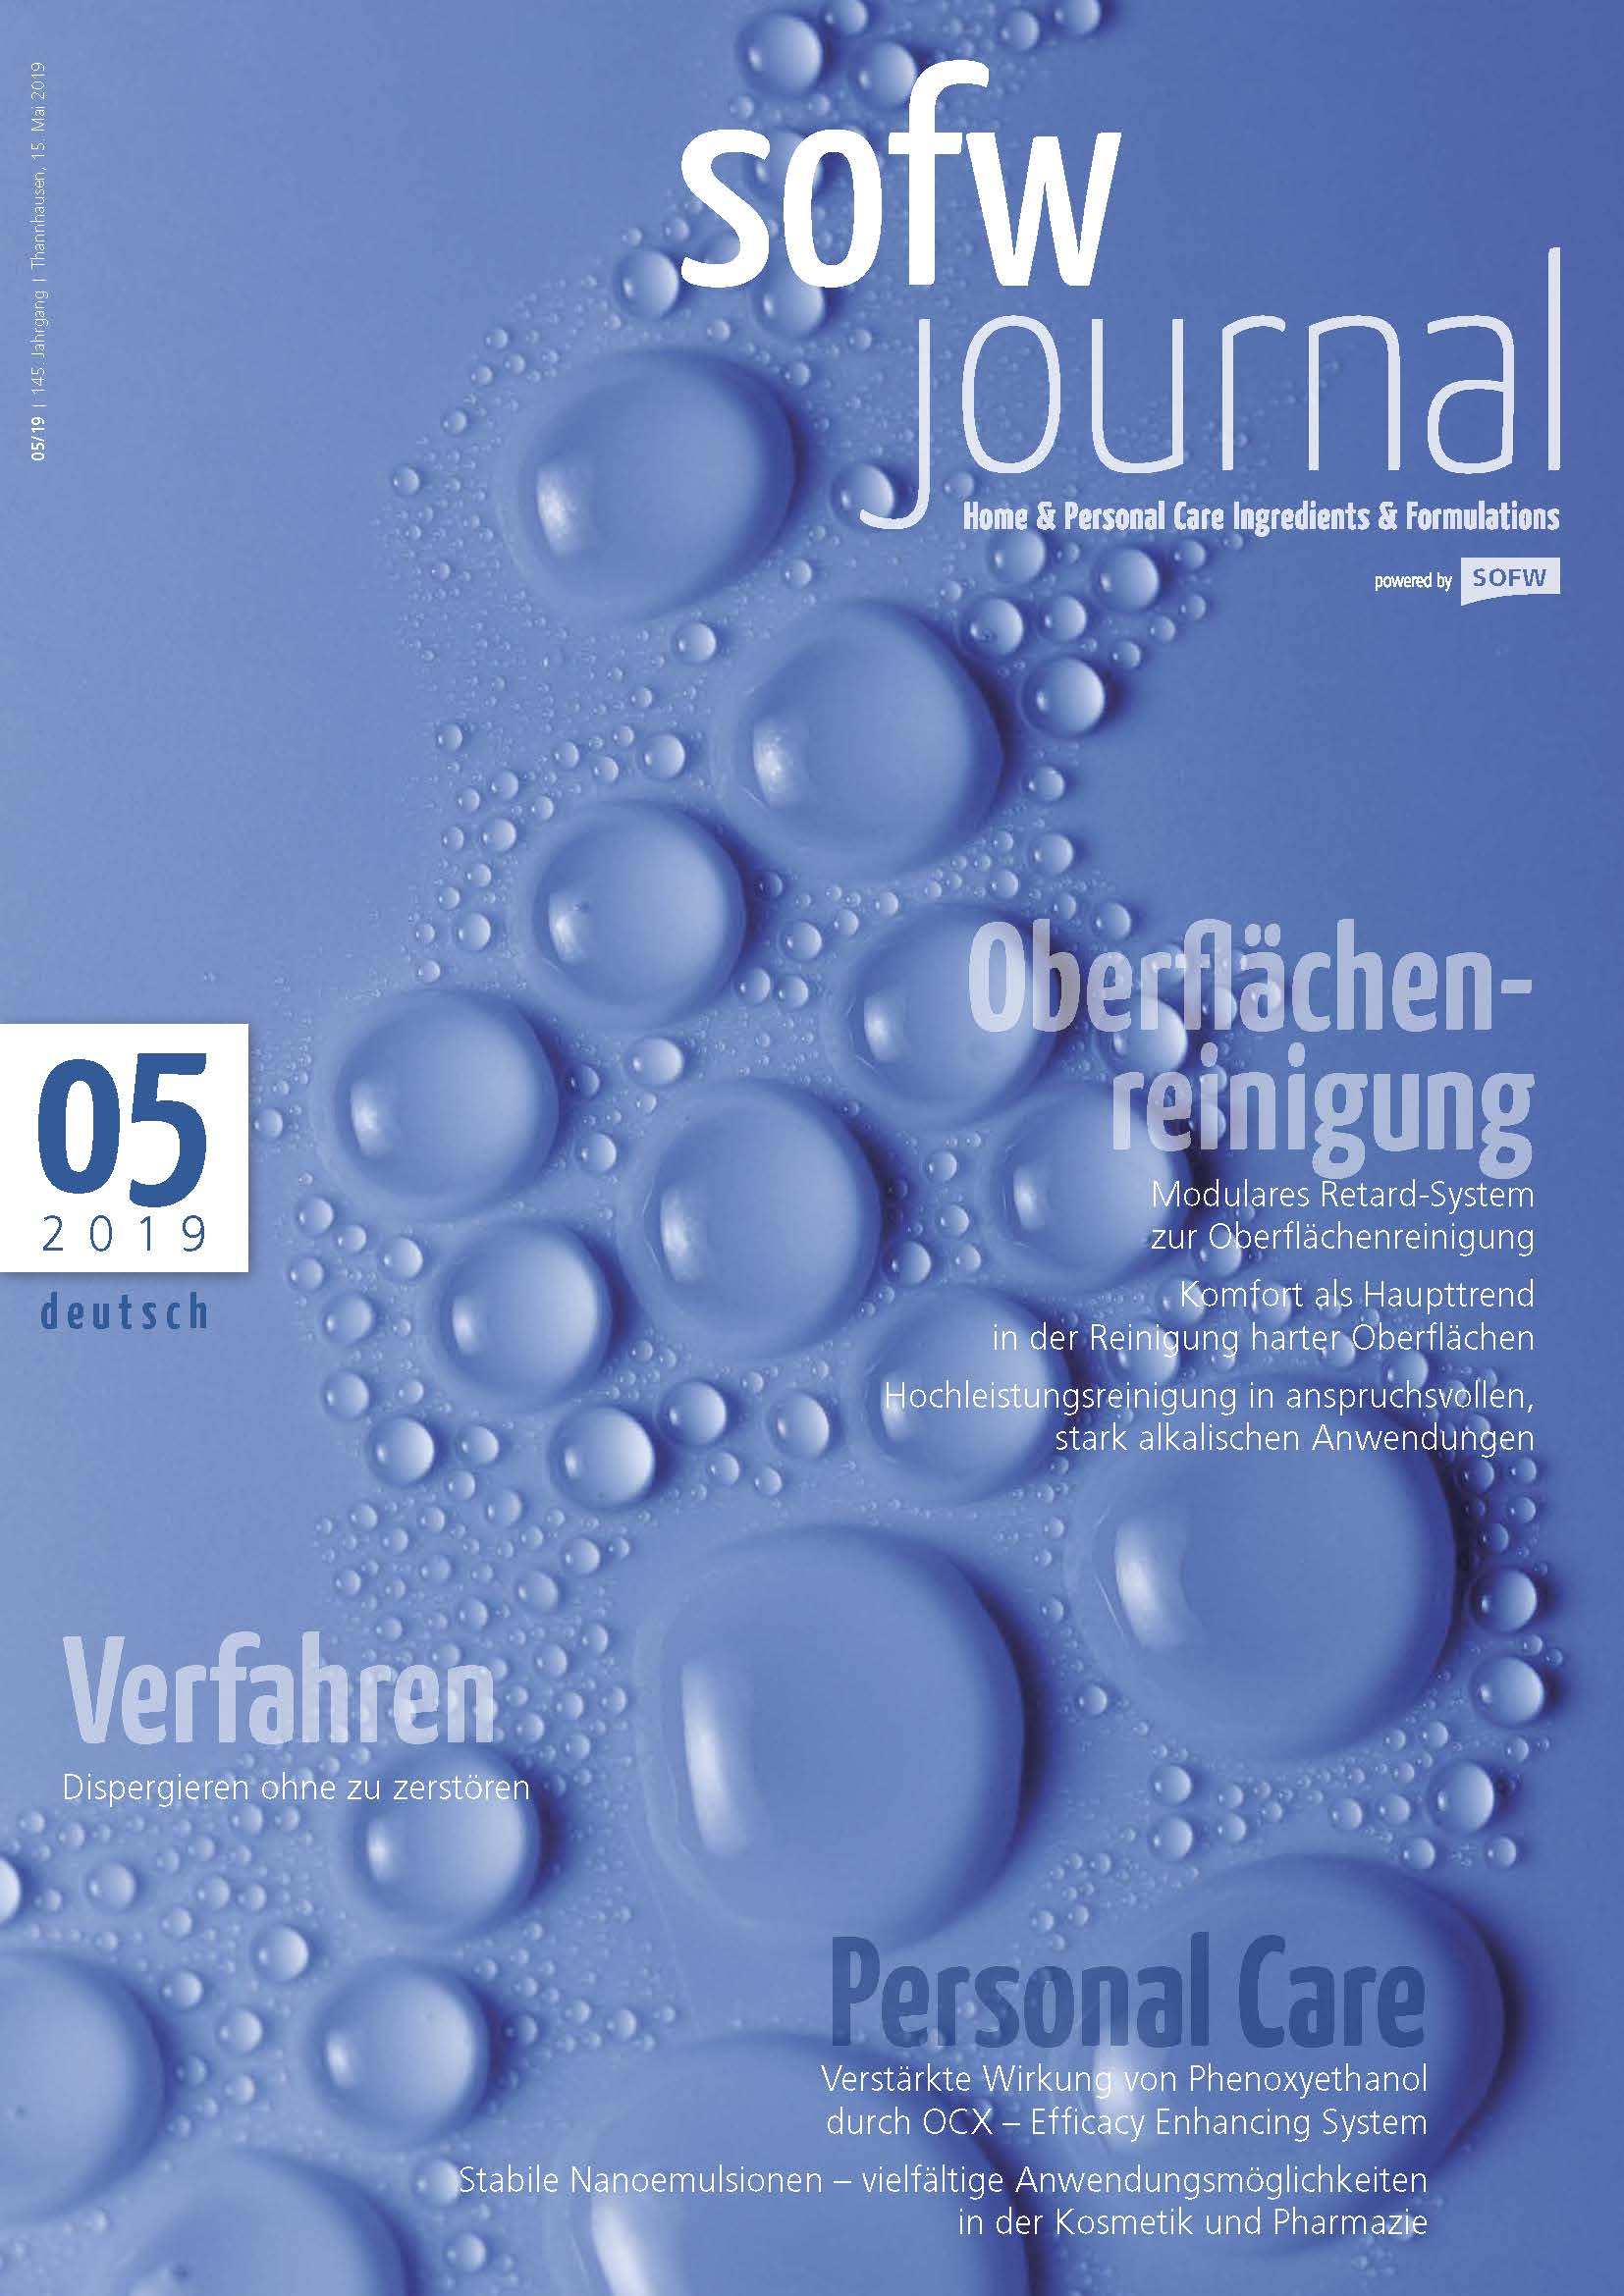 sofwjournal_de_2019_05_cover